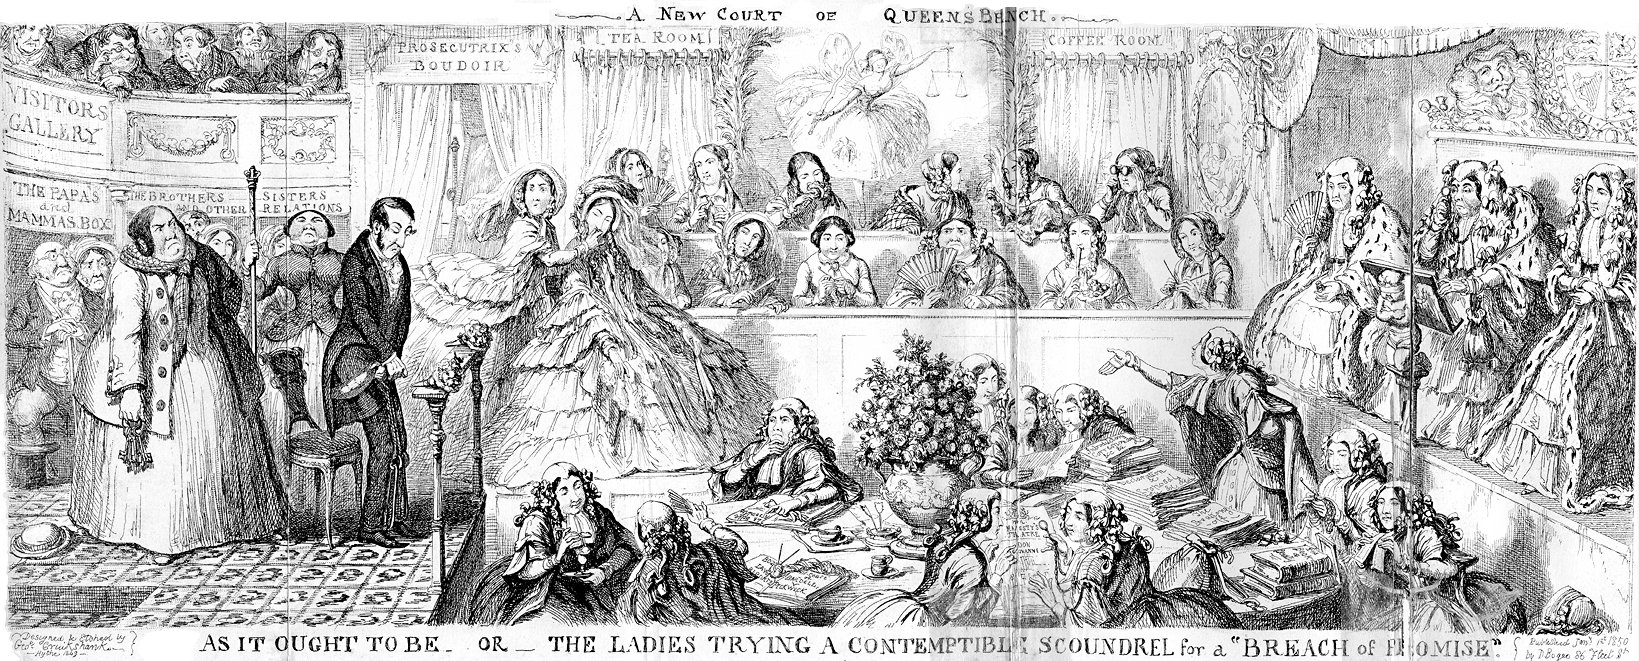 Political Cartoon Opposing Women's Rights, 1849, George Cruikshank, Comic Alamanck